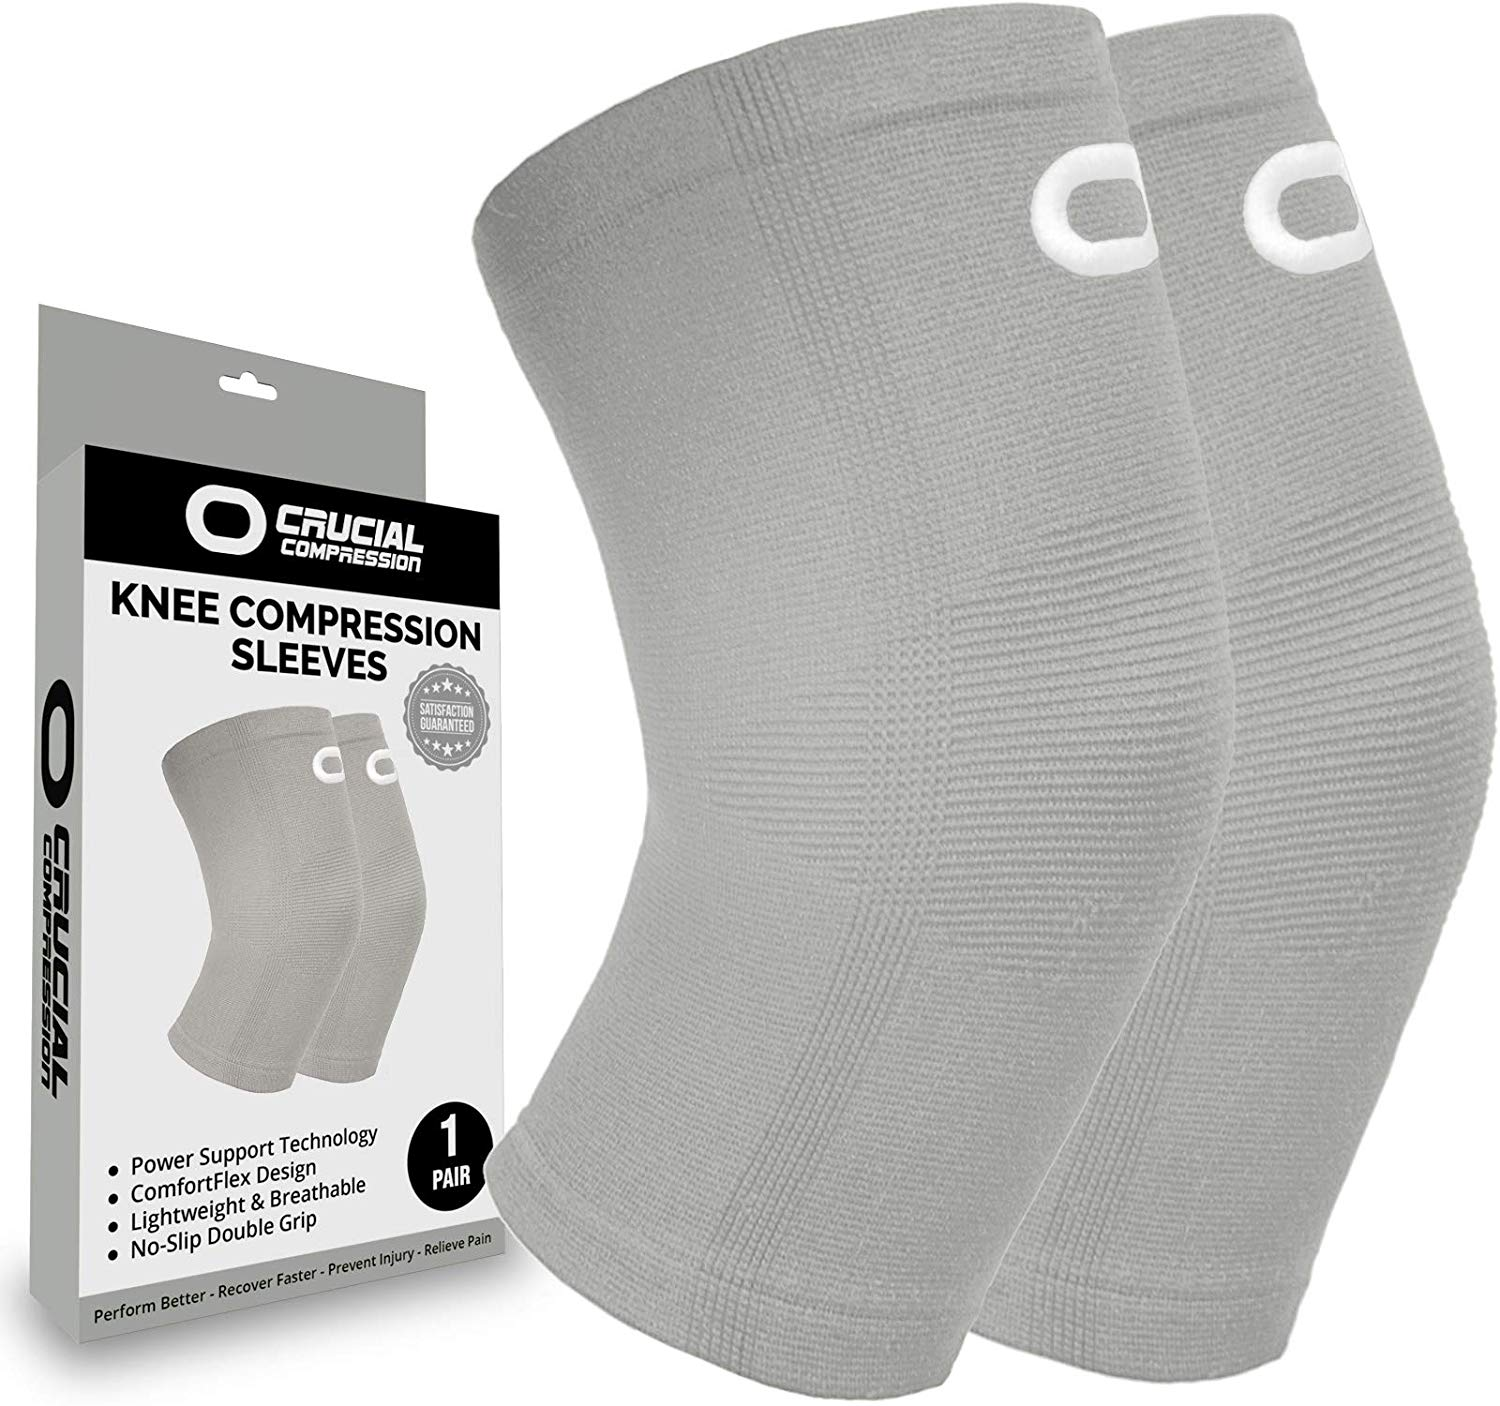 Crucial Compression knee pads